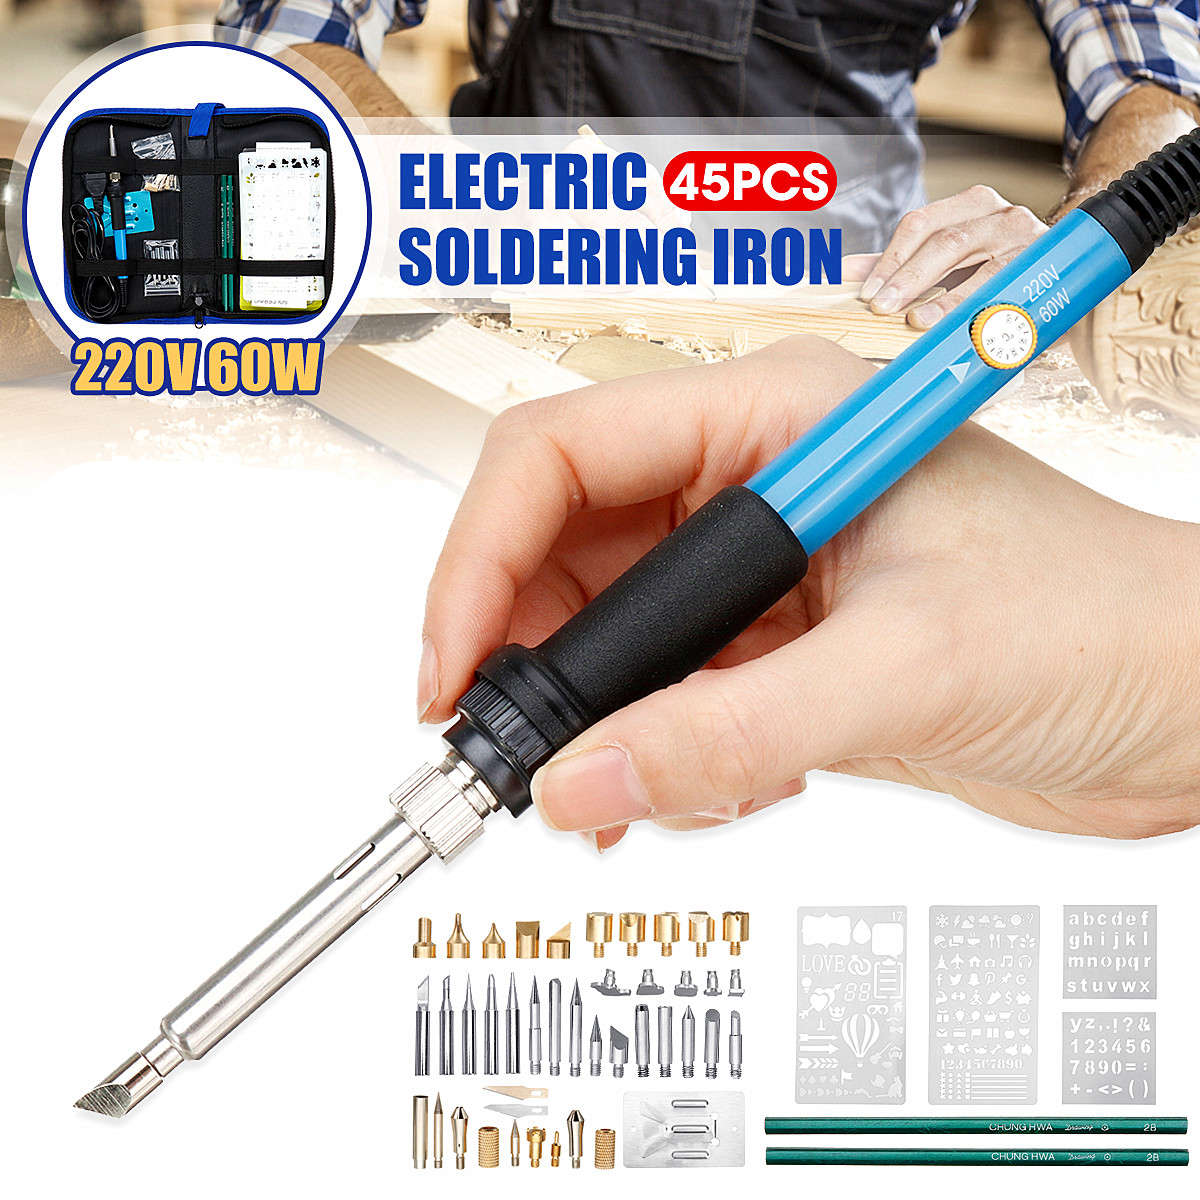 45 In 1 60W Electric Soldering Iron 220V 110V Welding Solder Soldering Iron Tool Kit Rework Station Heat Pencil Repair Tools New45 In 1 60W Electric Soldering Iron 220V 110V Welding Solder Soldering Iron Tool Kit Rework Station Heat Pencil Repair Tools New